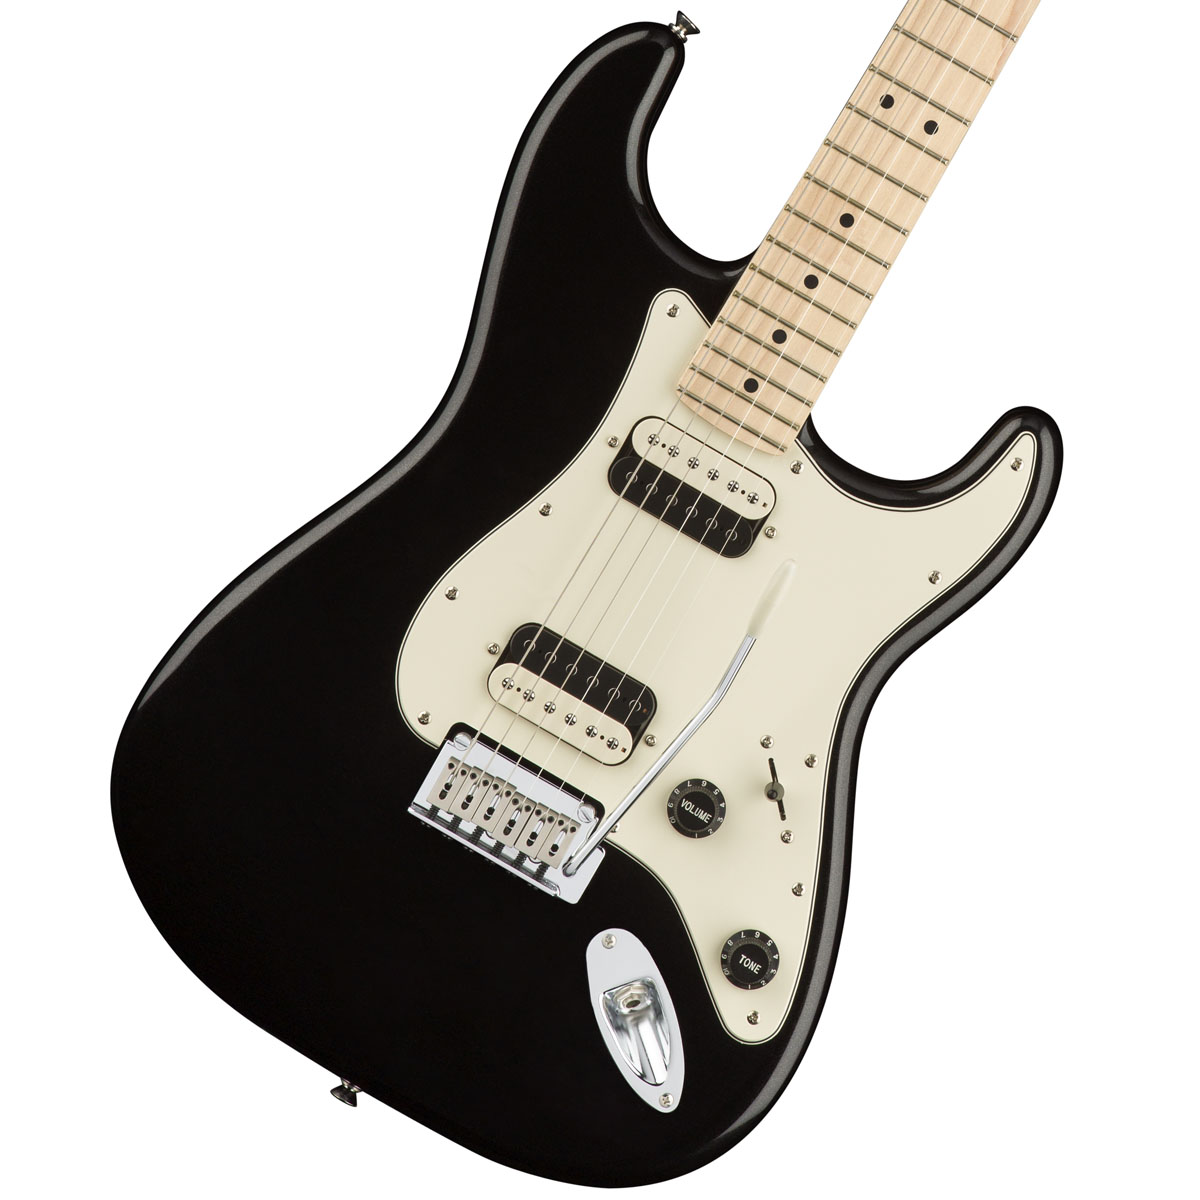 Squier by Fender / Contemporary Stratocaster HH Black Metallic Maple